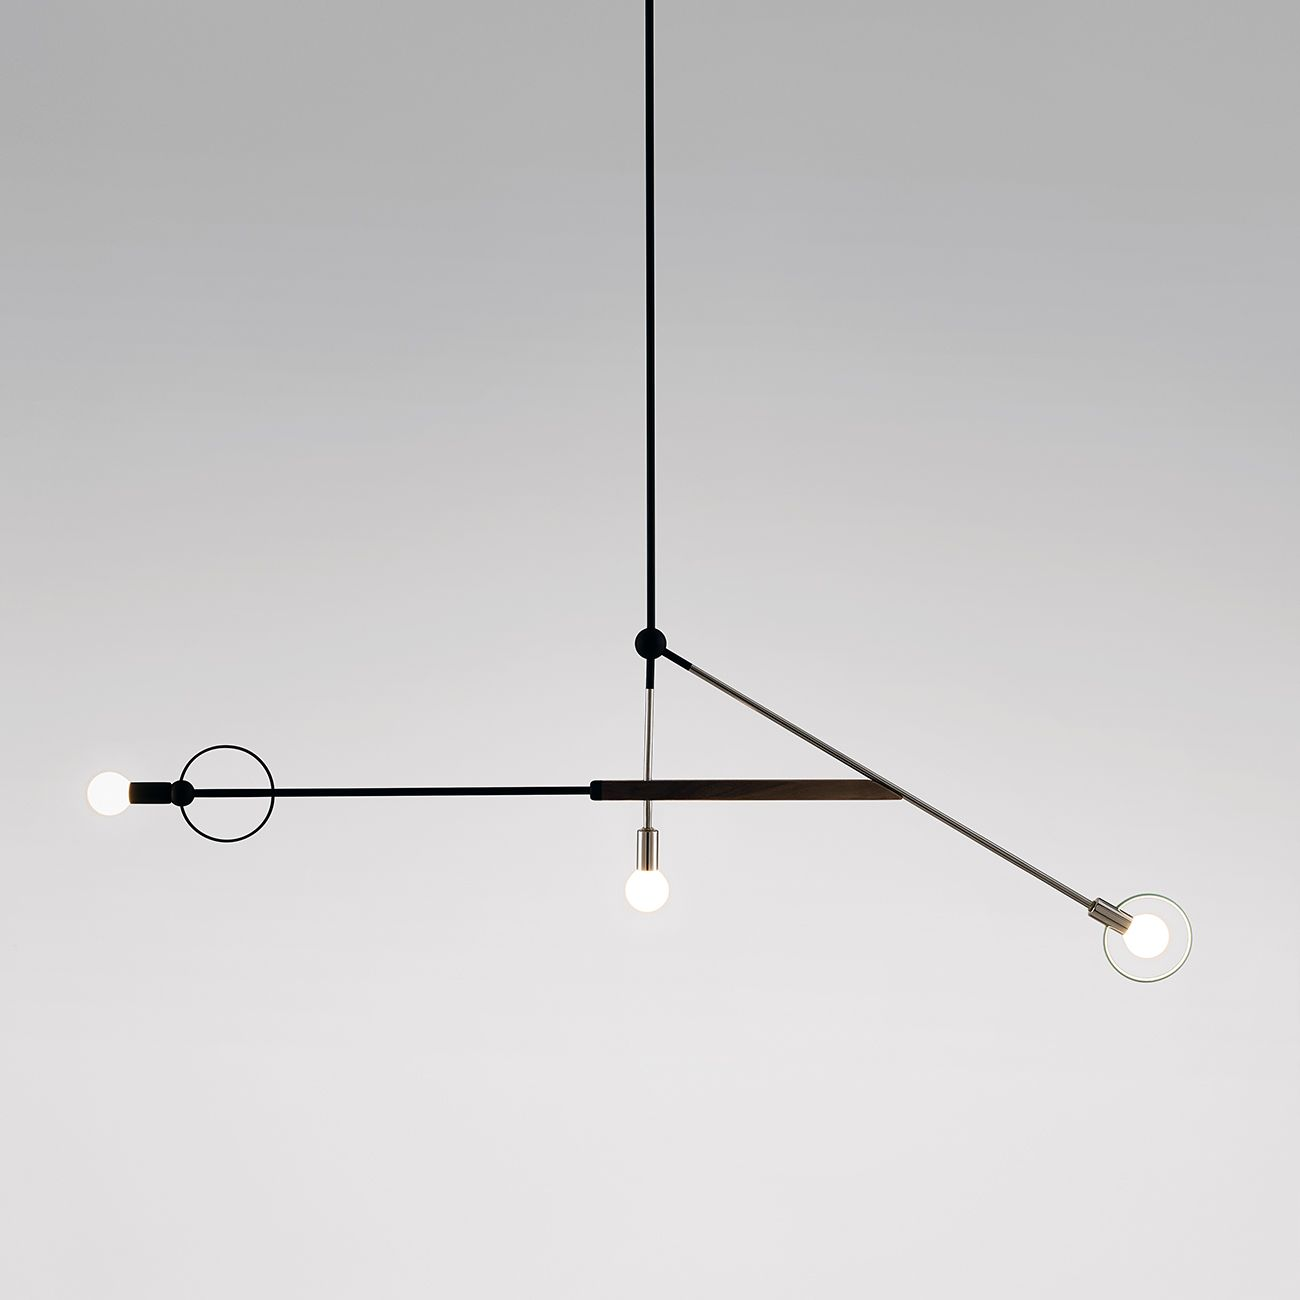 At sight unseen offsite montreal designer jean pascal gauthier will present 10 of his balanced beautiful weightless mobile lights